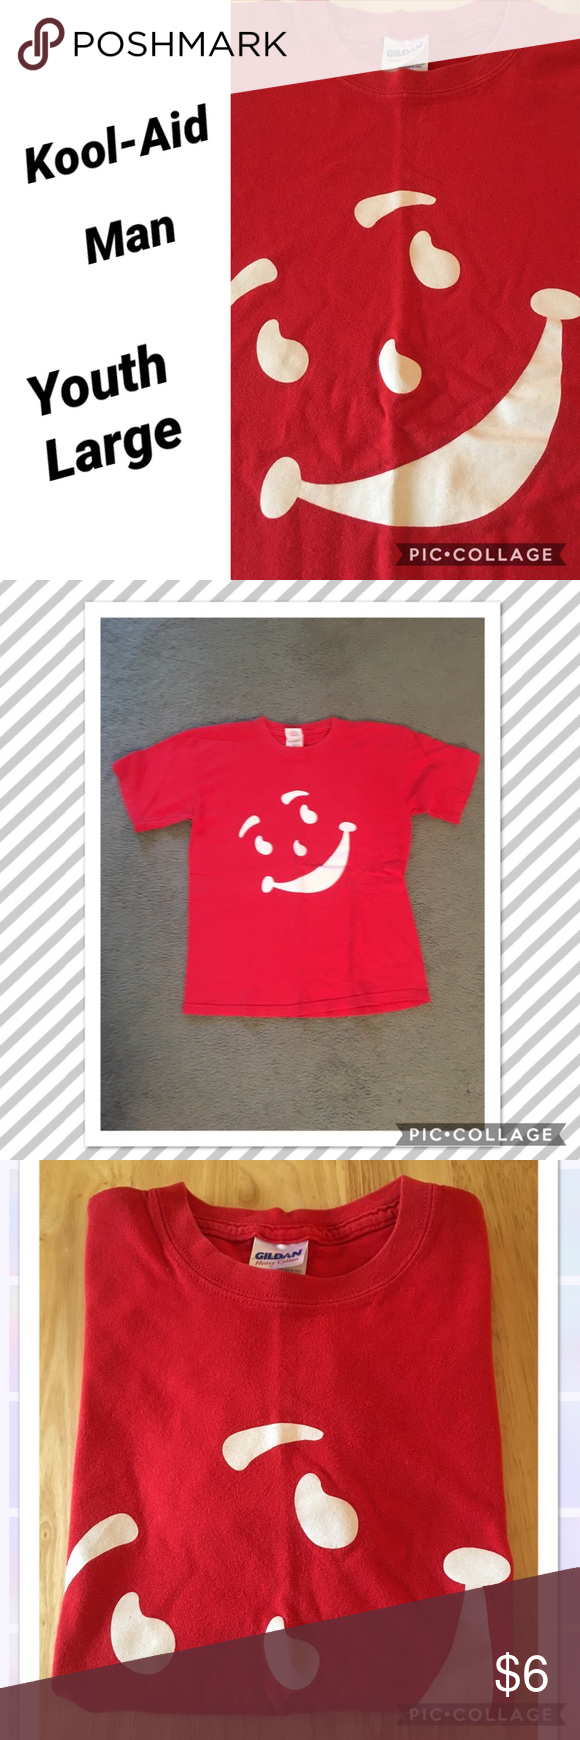 KoolAid Man TShirt Youth Large This is a used tee, maybe